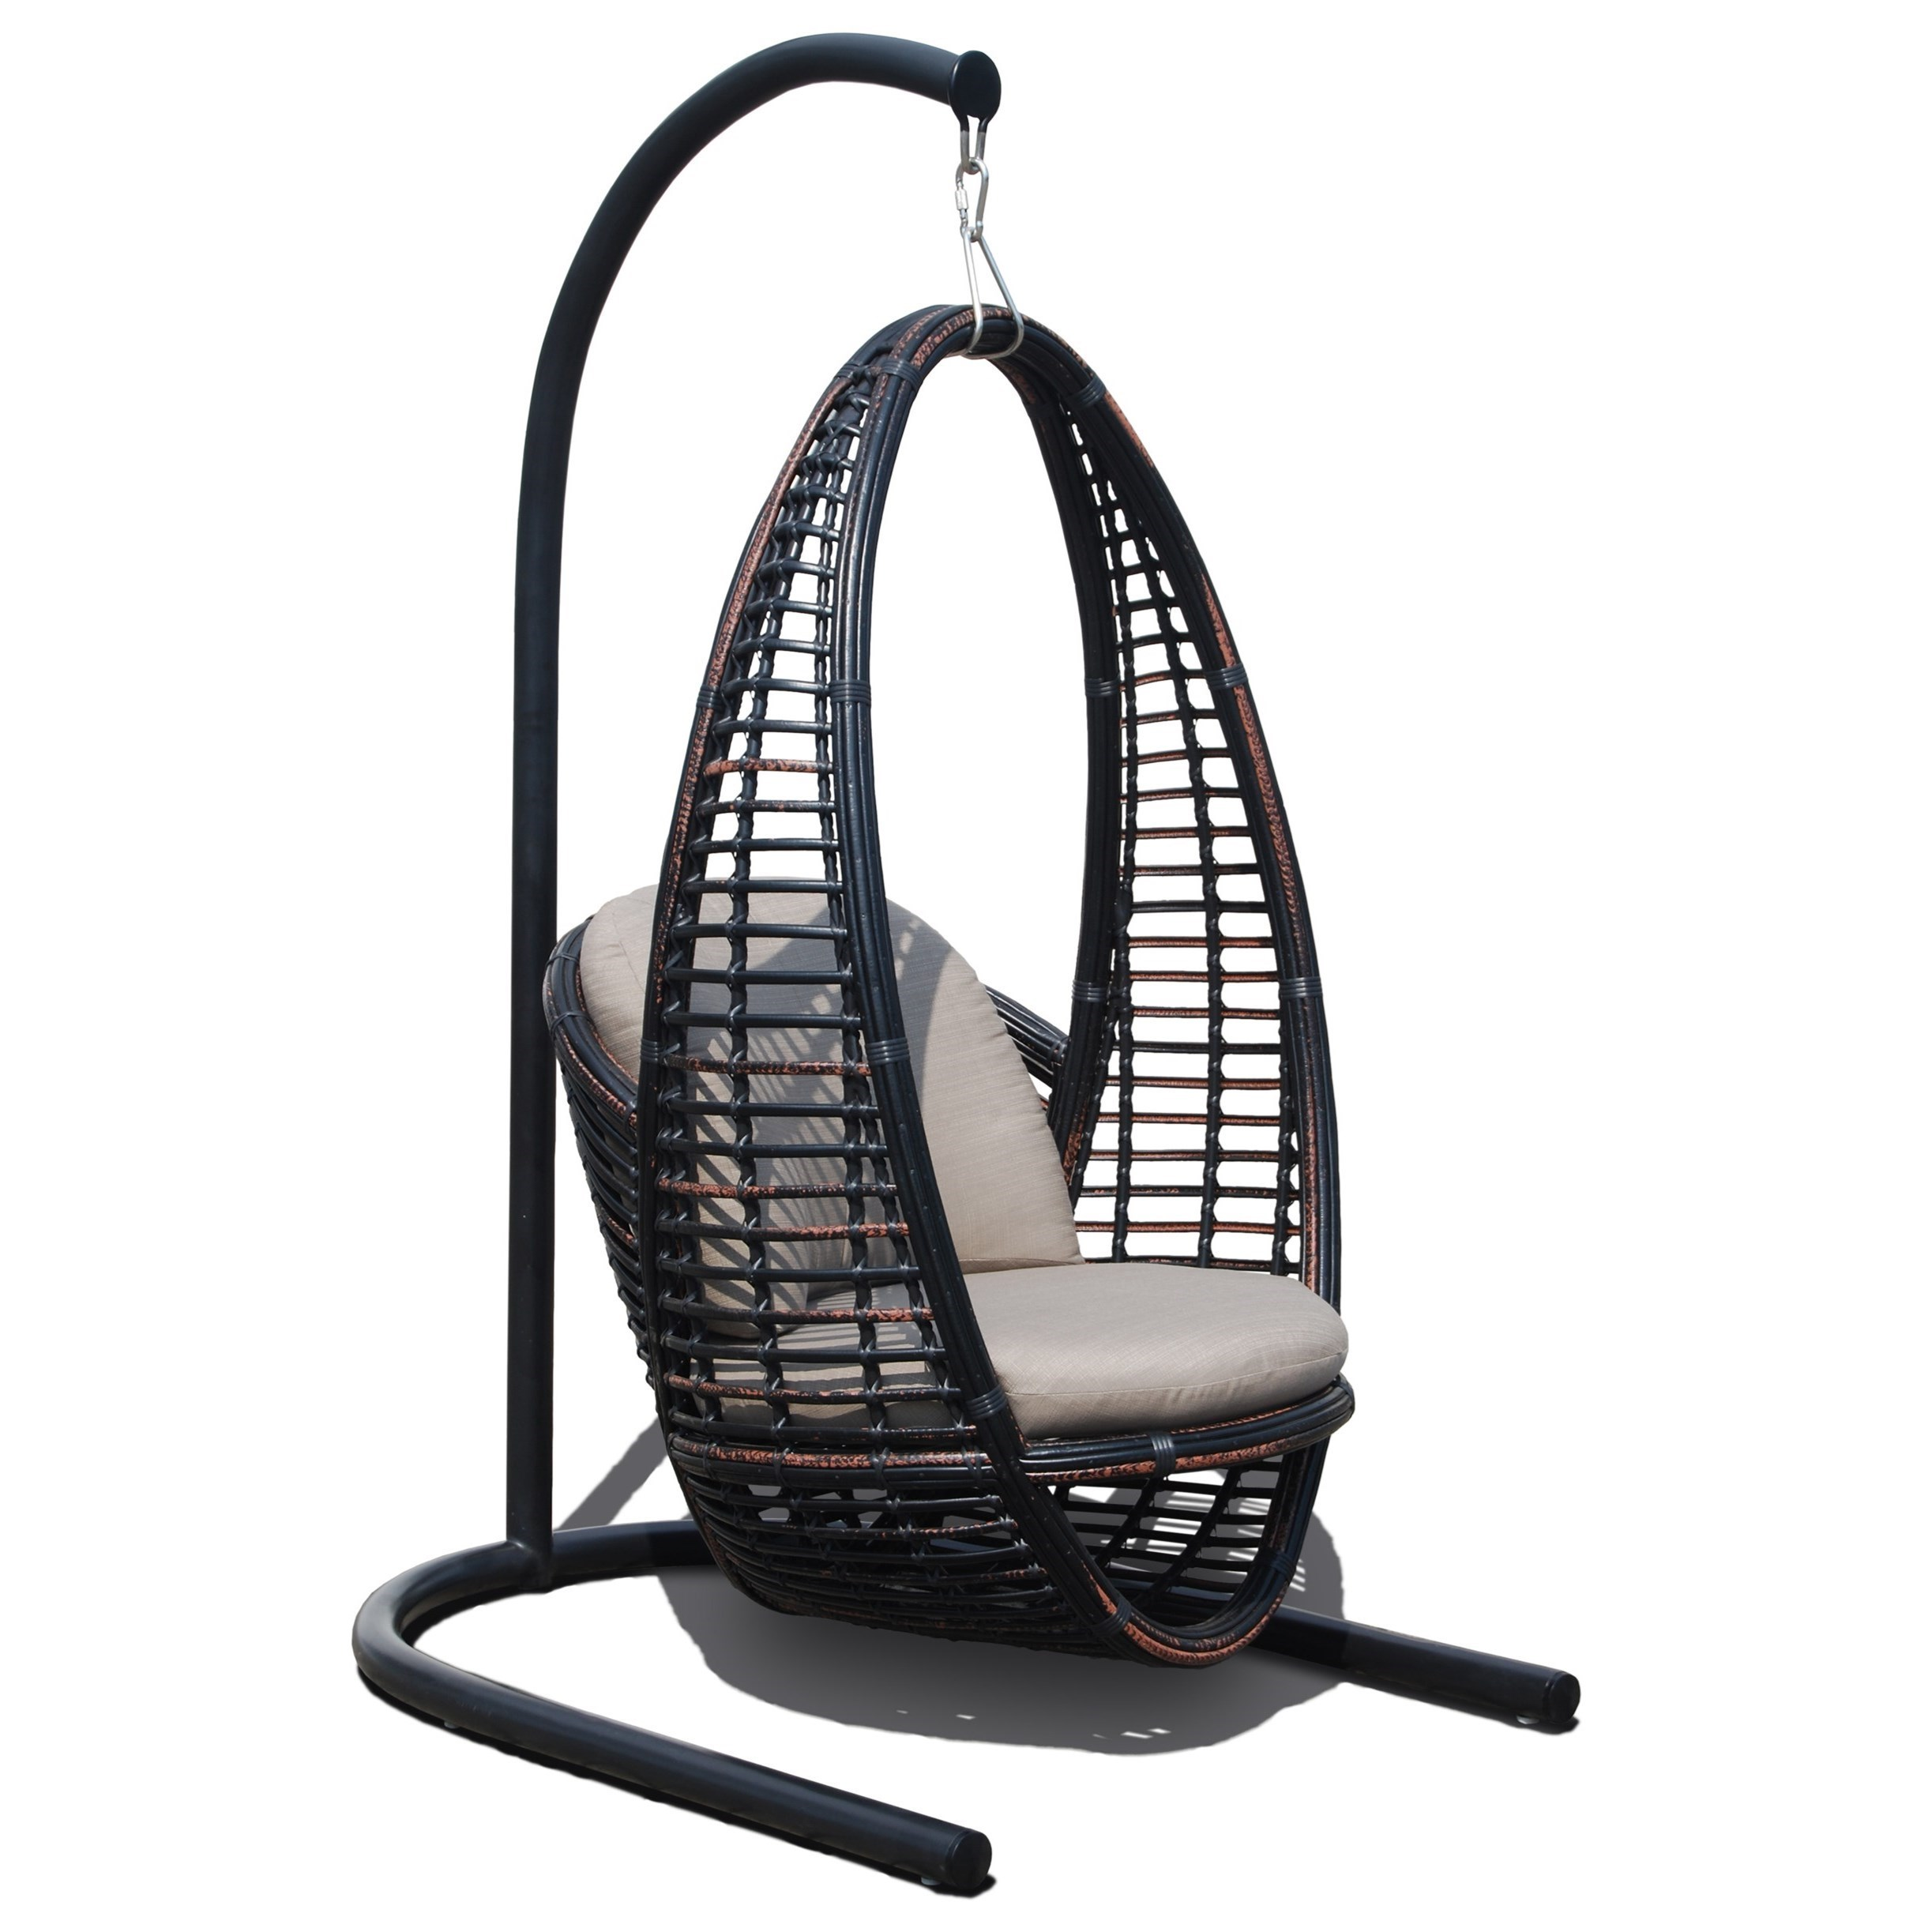 hanging outdoor chairs small bedroom chair or stool skyline design heri with cushion baer s